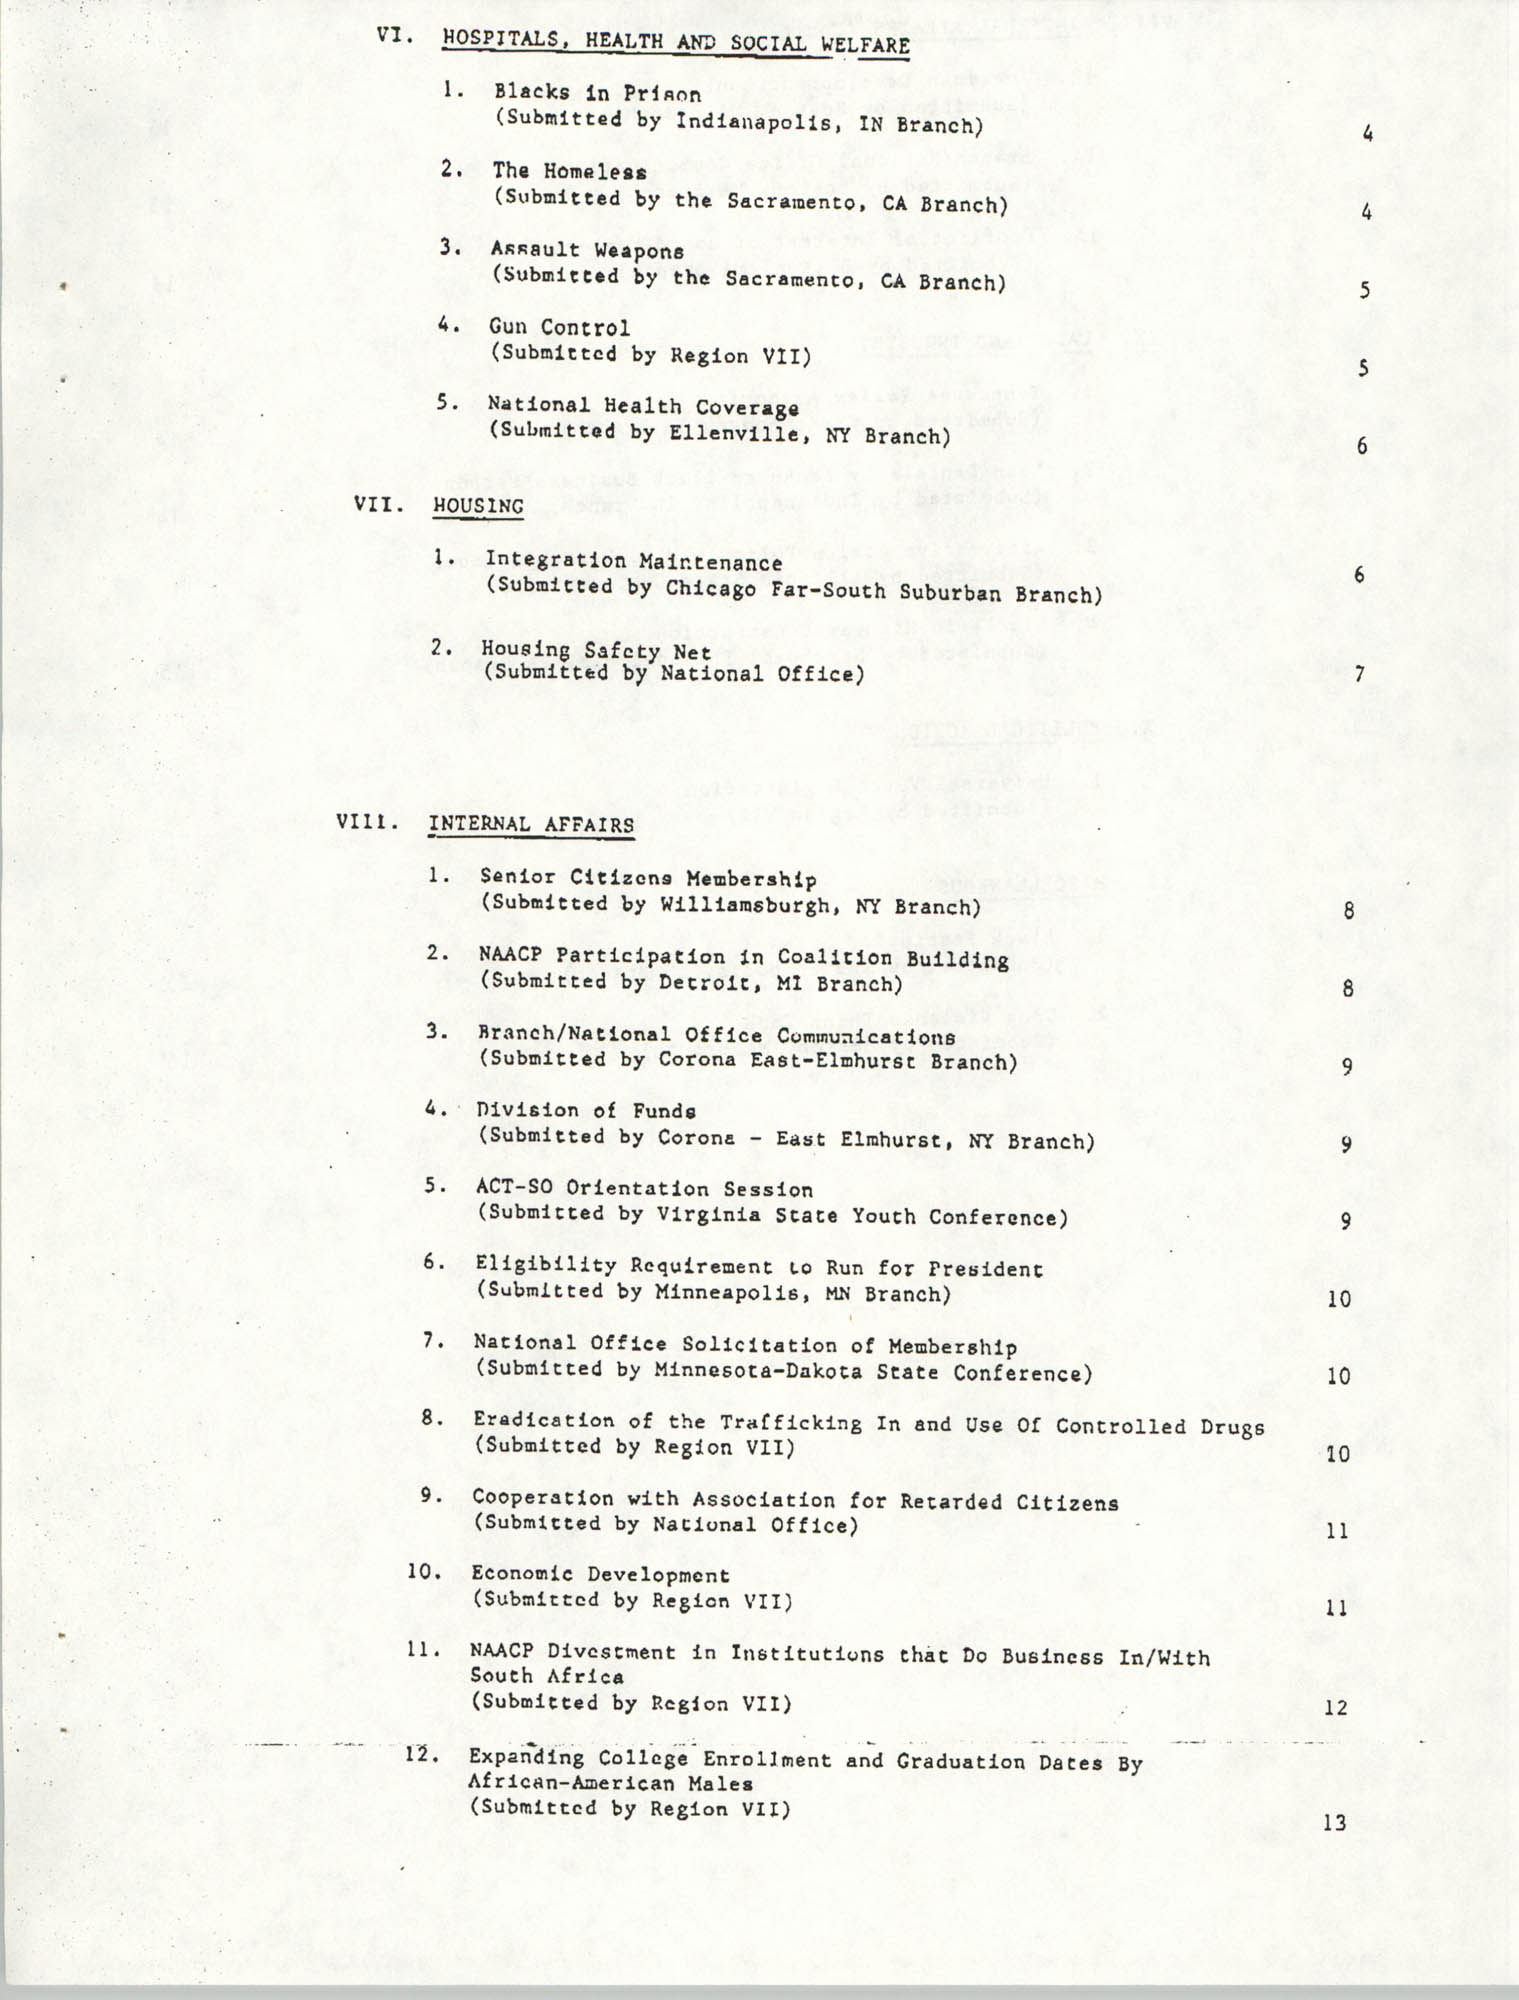 Resolutions Submitted Under Article X, Section 2 of the Constitution of the NAACP, Table of Contents Page 2